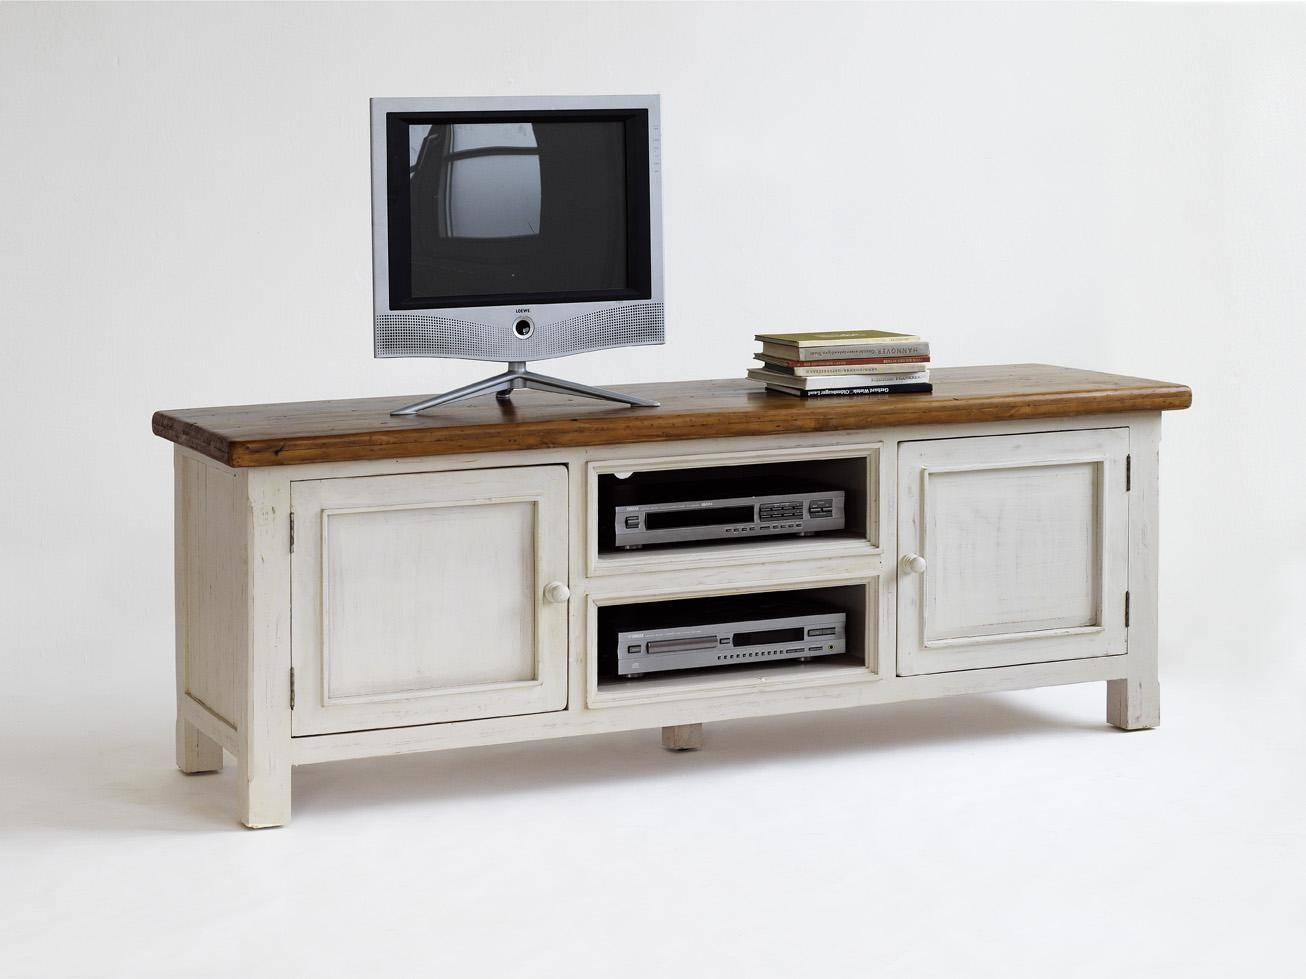 Furniture. Wonderful Design Of Wooden Tv Stands With Mount To for White and Wood Tv Stands (Image 6 of 15)